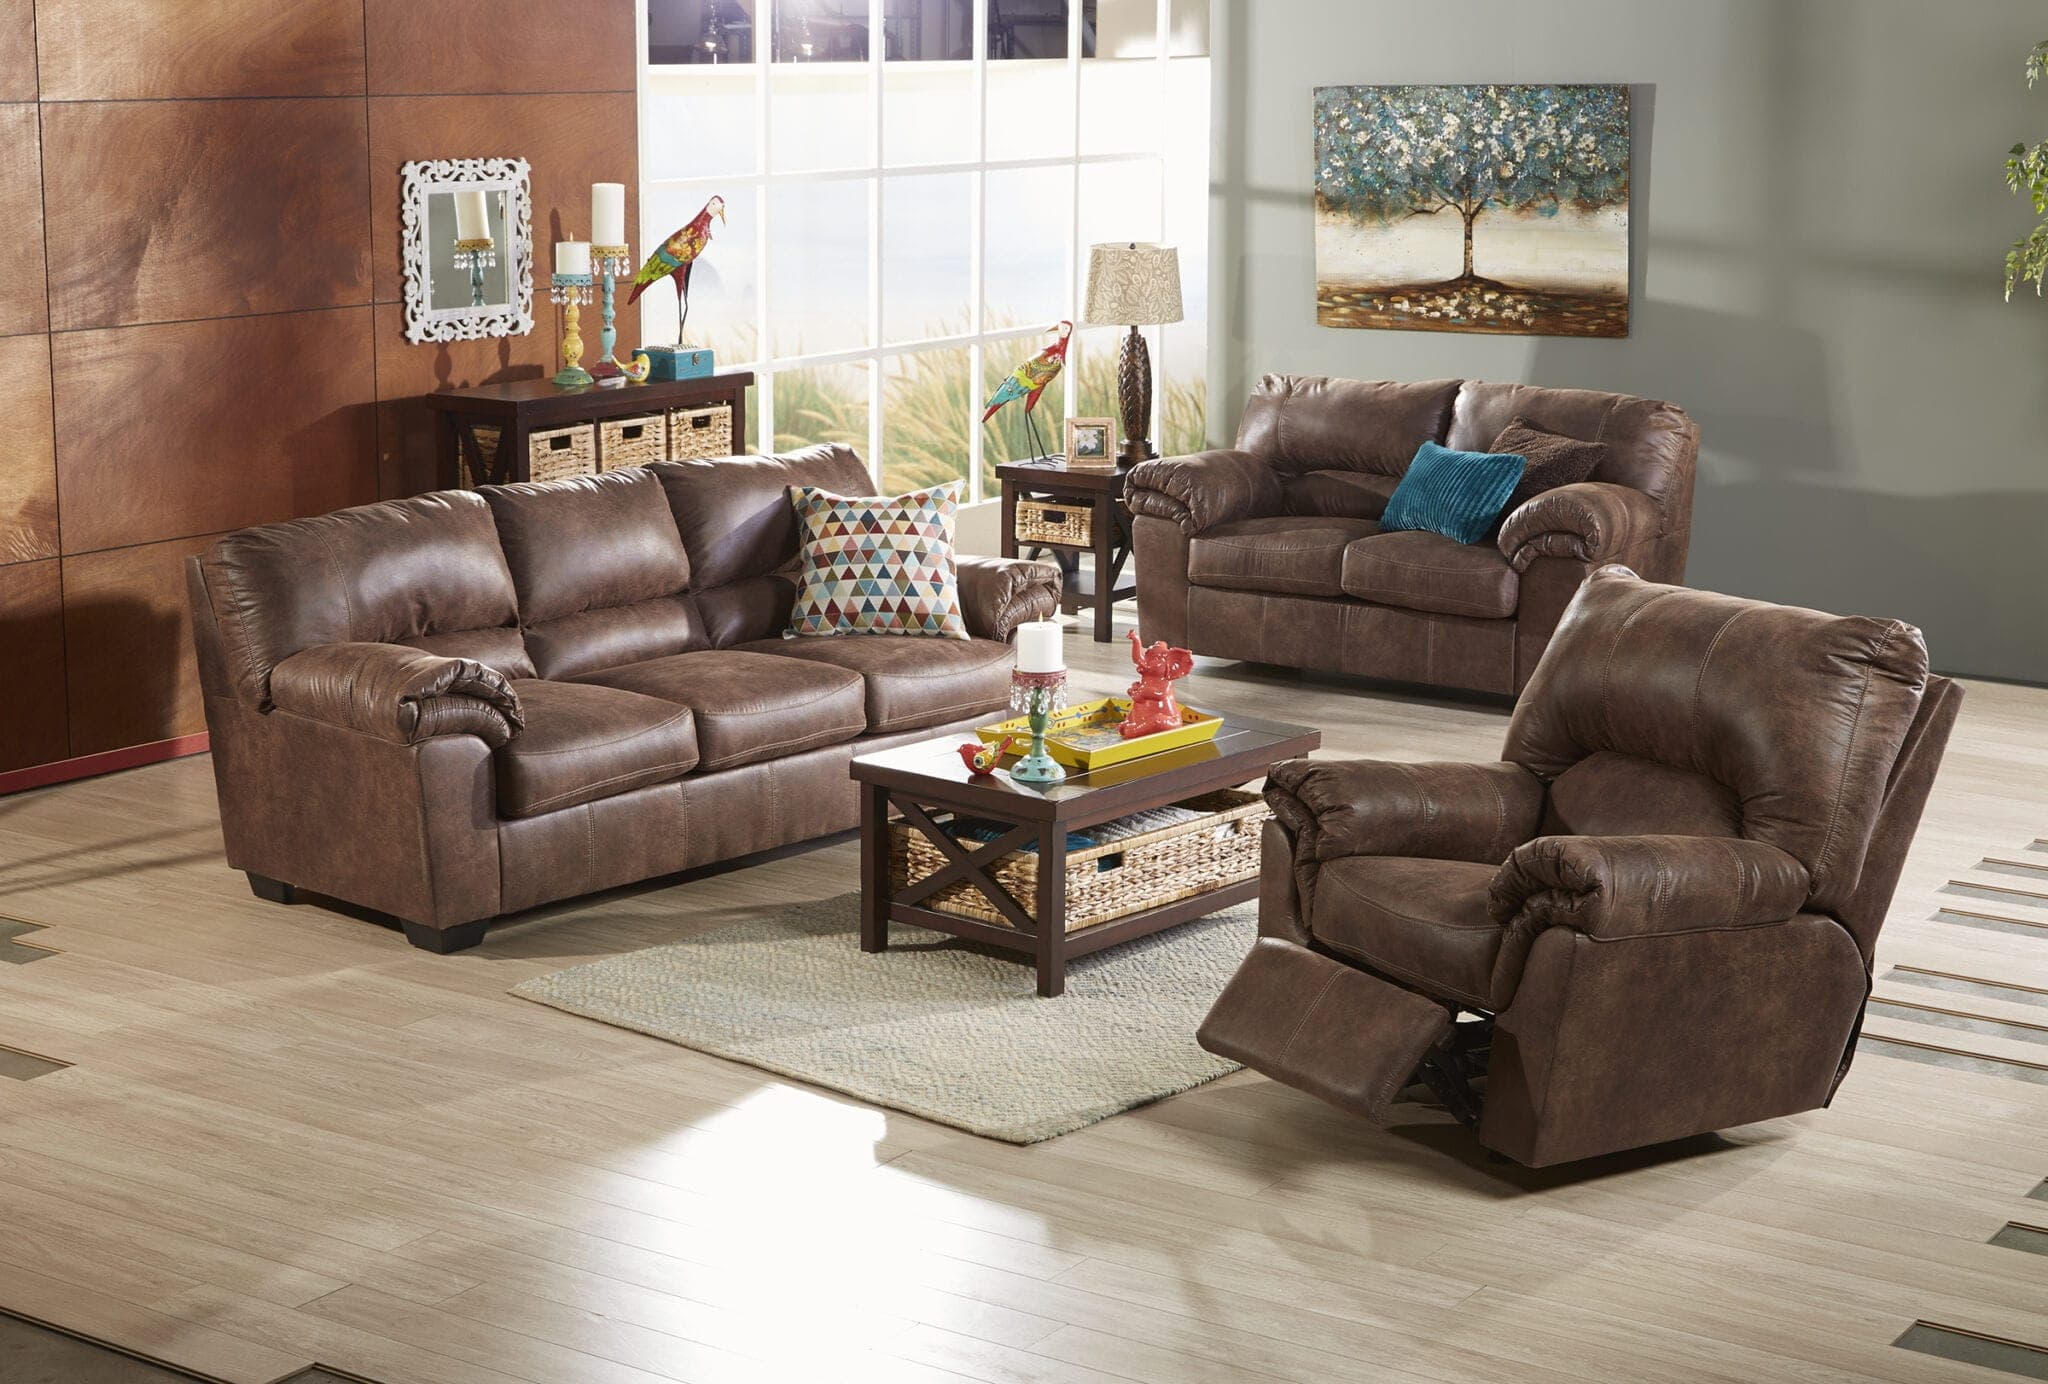 Fred Meyer Muebles - Fred Meyer Truckload Furniture Event Couches Under 300 5 Pc [mjhdah]https://www.thriftynorthwestmom.com/wp-content/uploads/2017/02/298757_08837646.jpg